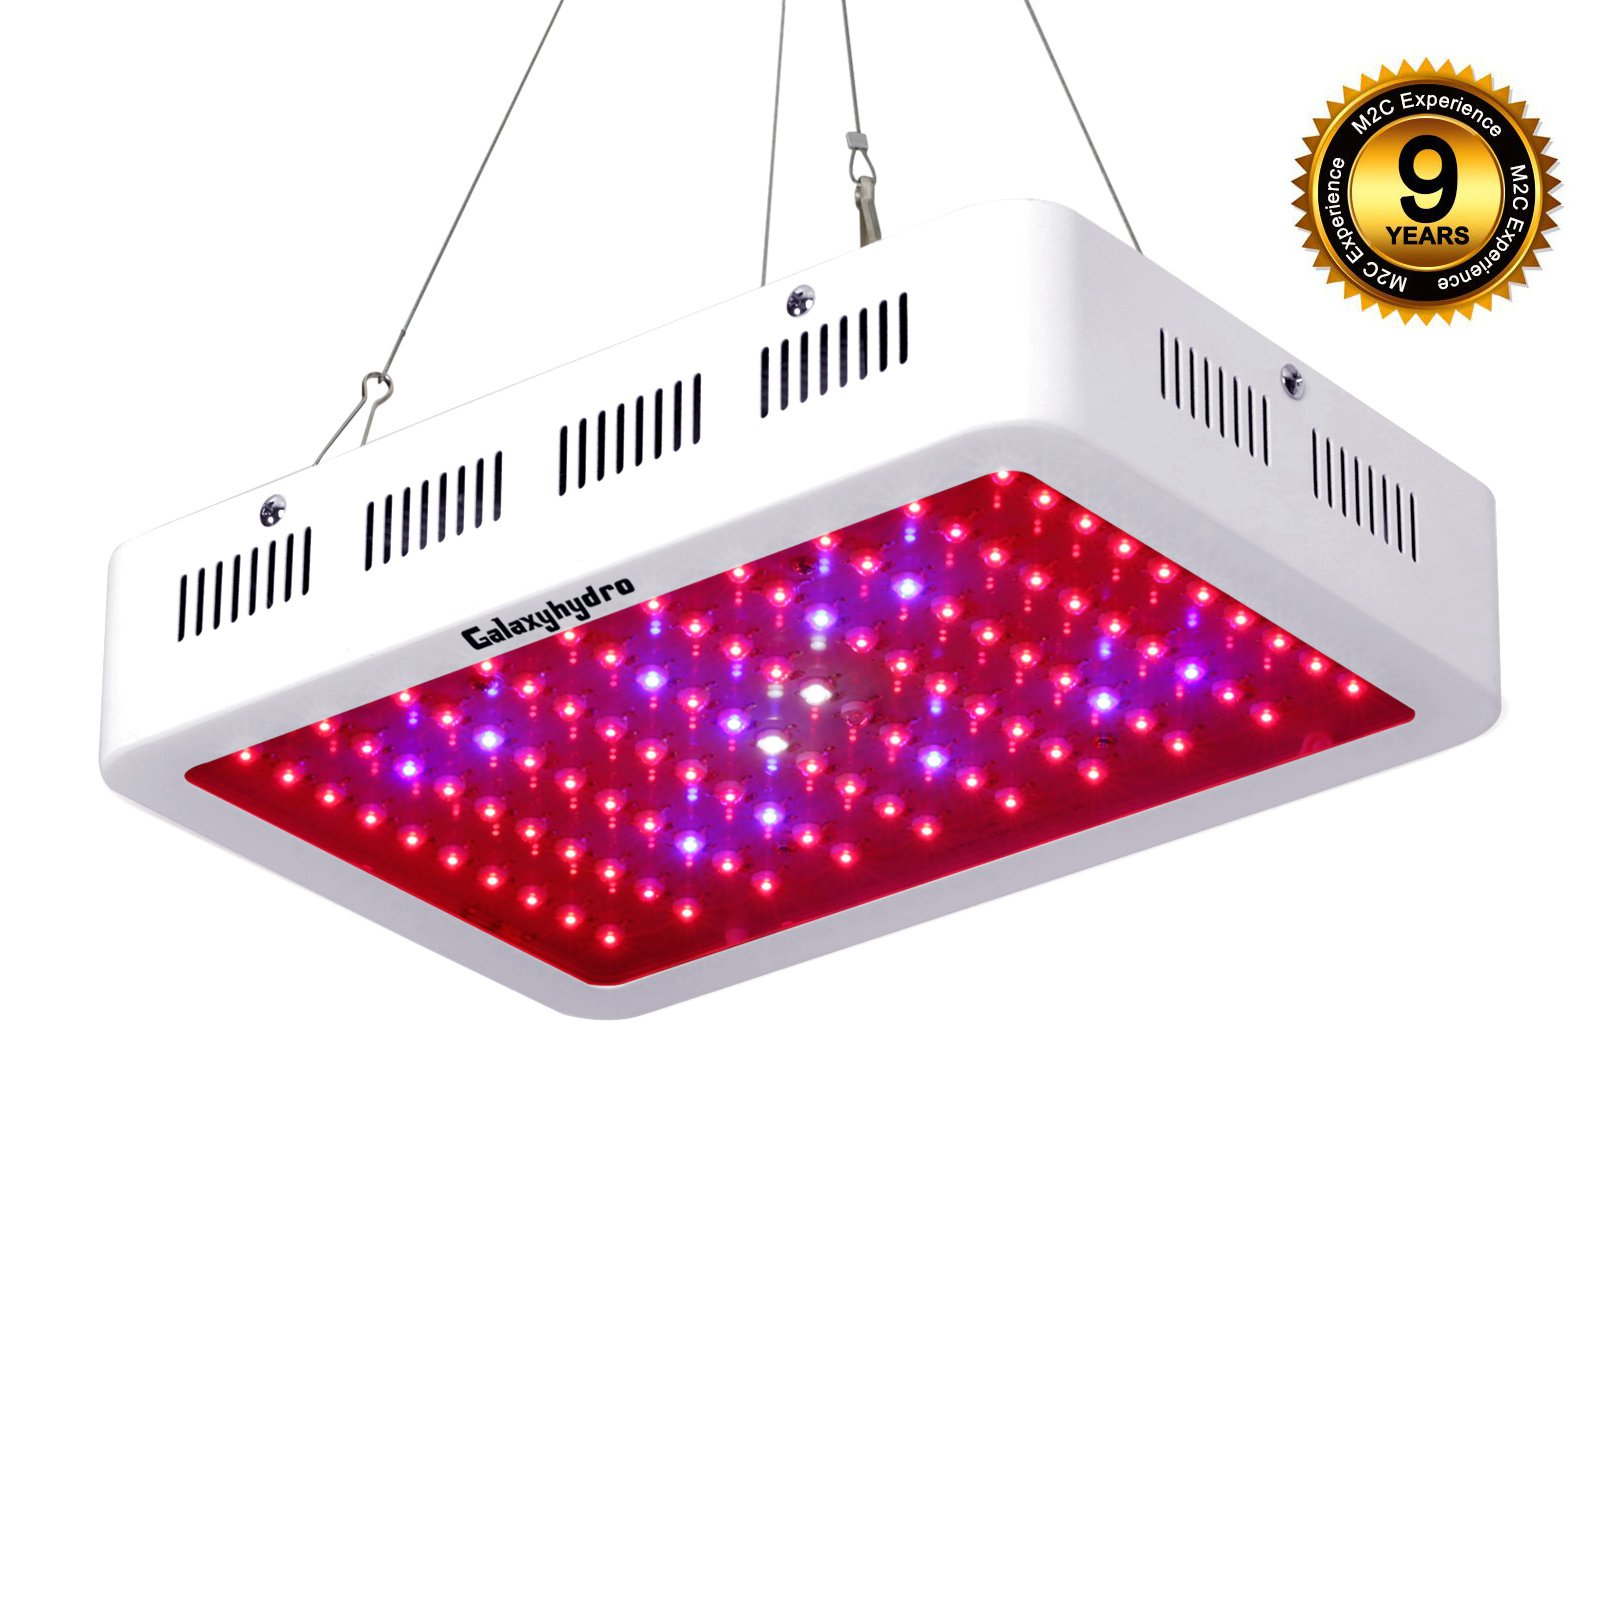 Best rated in plant growing light fixtures helpful customer roleadro led grow light galaxyhydro series 300w indoor plant grow lights full spectrum with uvir arubaitofo Gallery